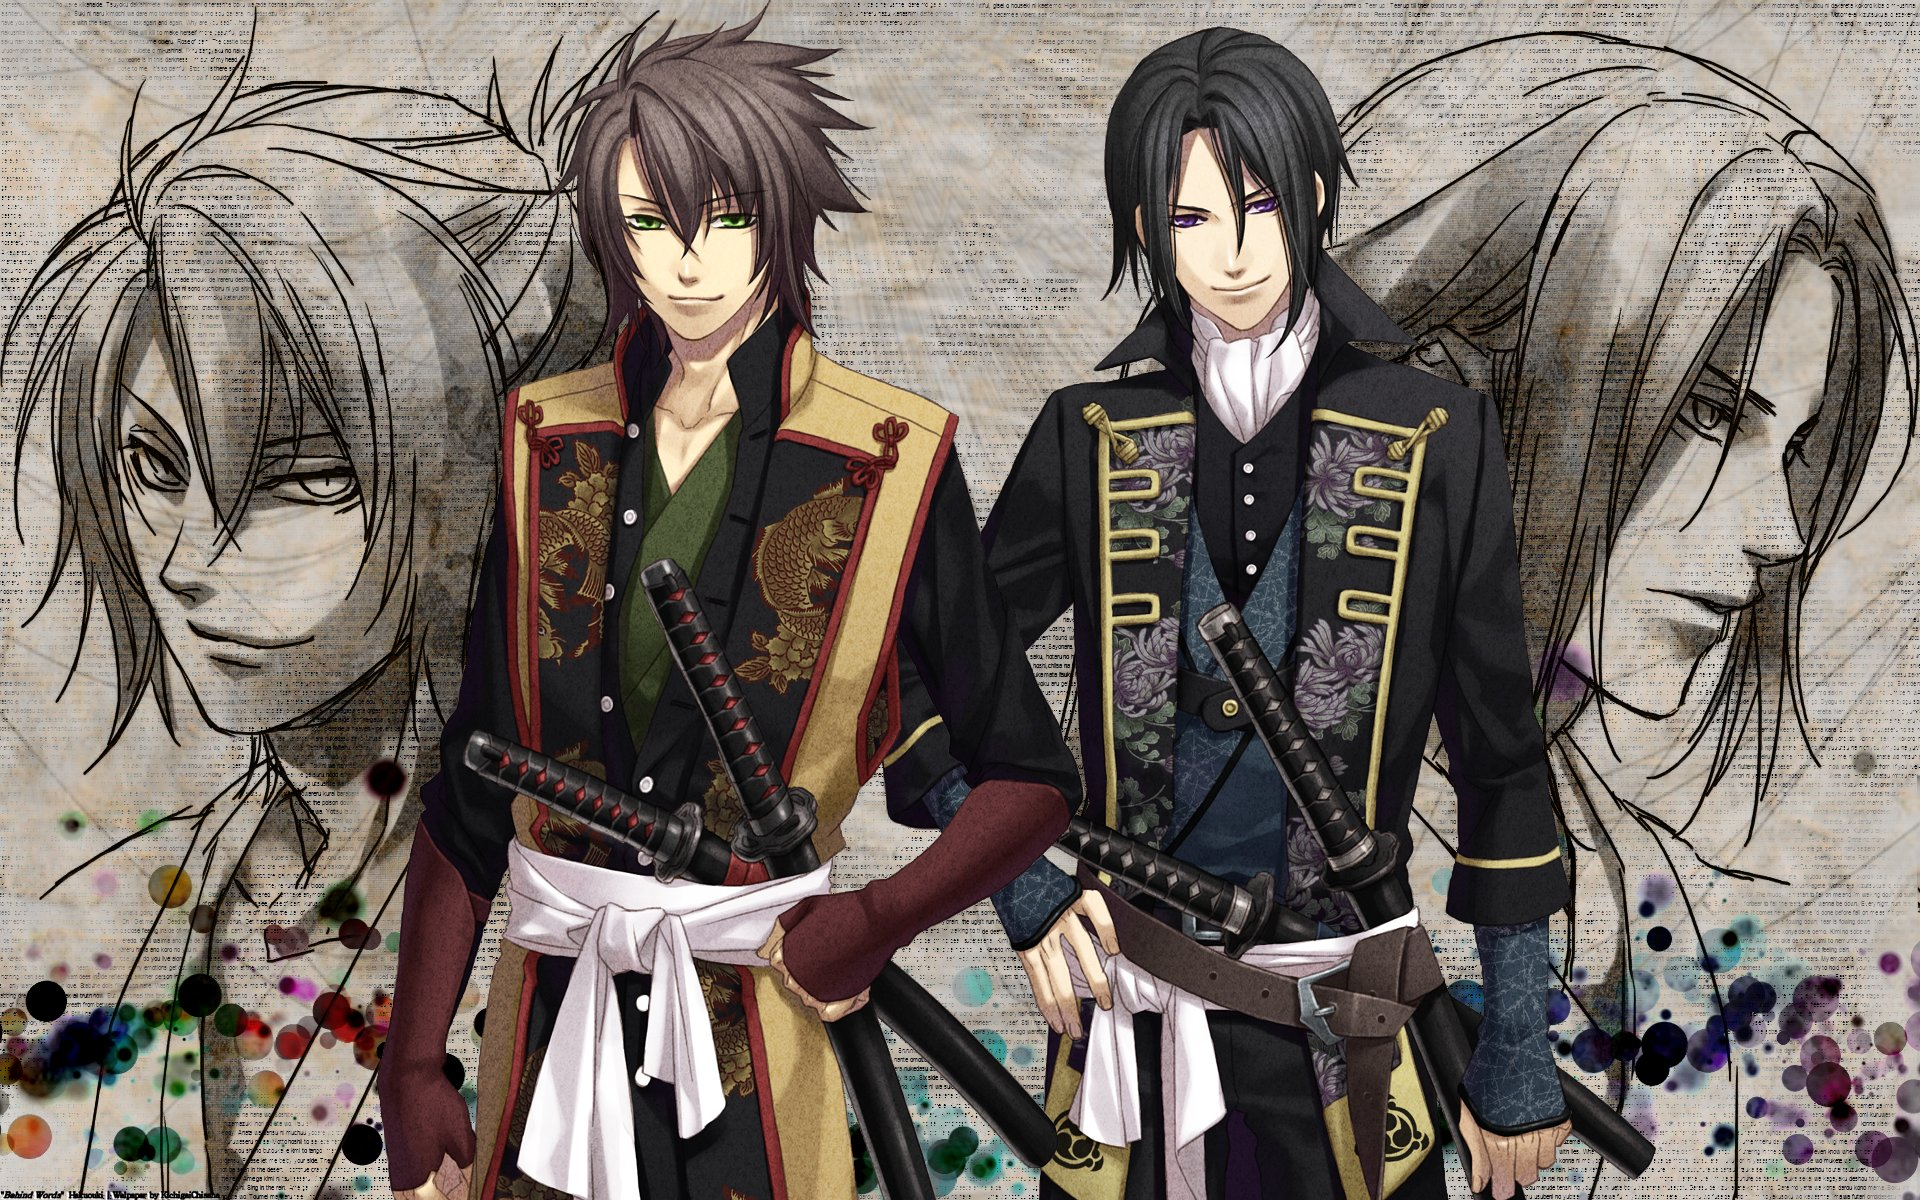 HQ Hakuouki Shinsengumi Kitan Wallpapers | File 724.12Kb